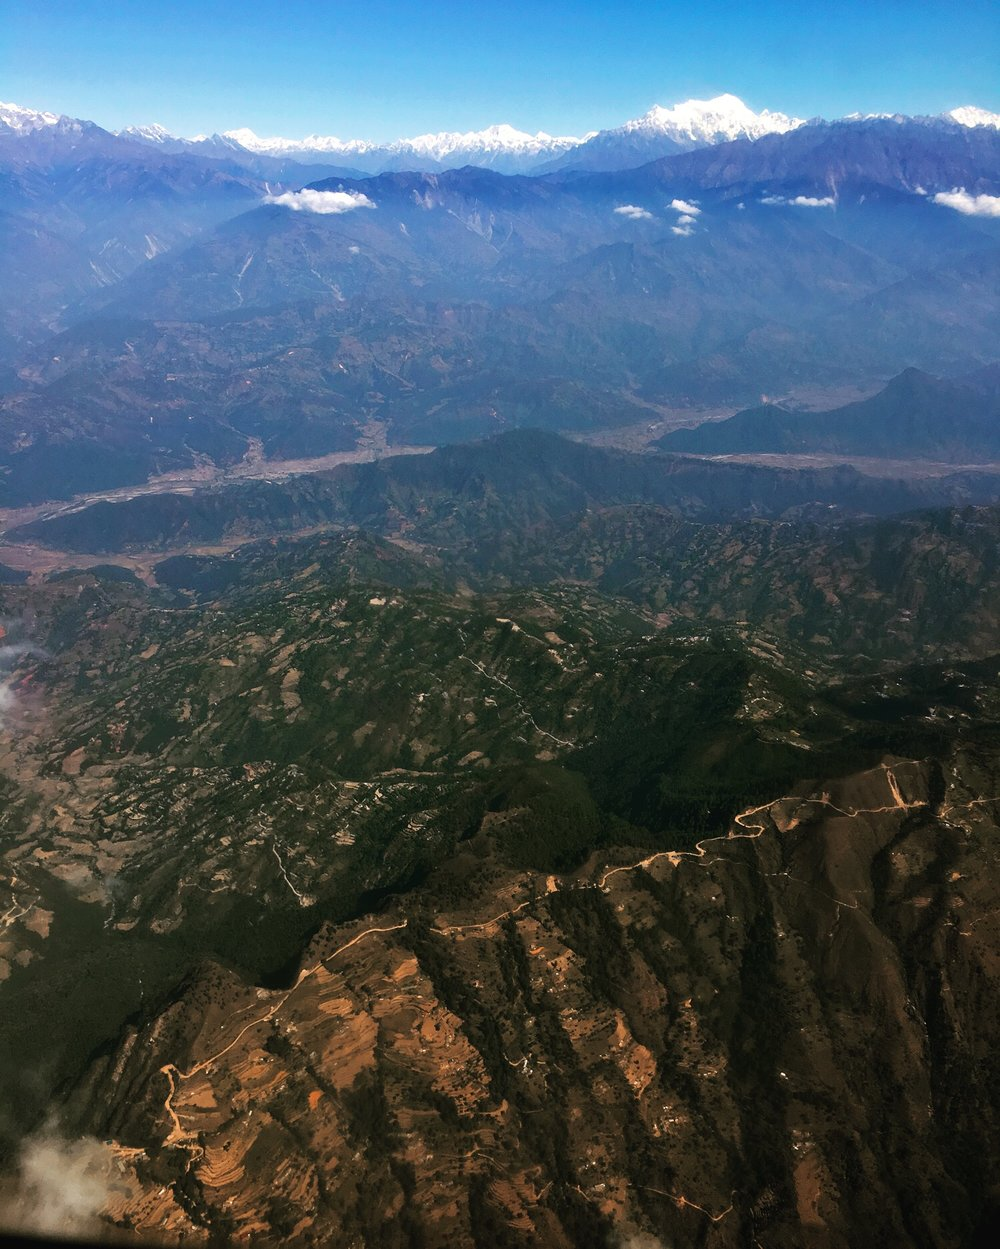 Nov 17.2, 2016   From the air Nepal remains lined by prayer flags atop small village homes and coursing down disparate rounded temple stupas. I can see the long, serpentine road that connects Kathmandu to Pokhara. Those famous gateways to the Himalaya; those places where modest dreams meet the floor and ceiling of the Earth.